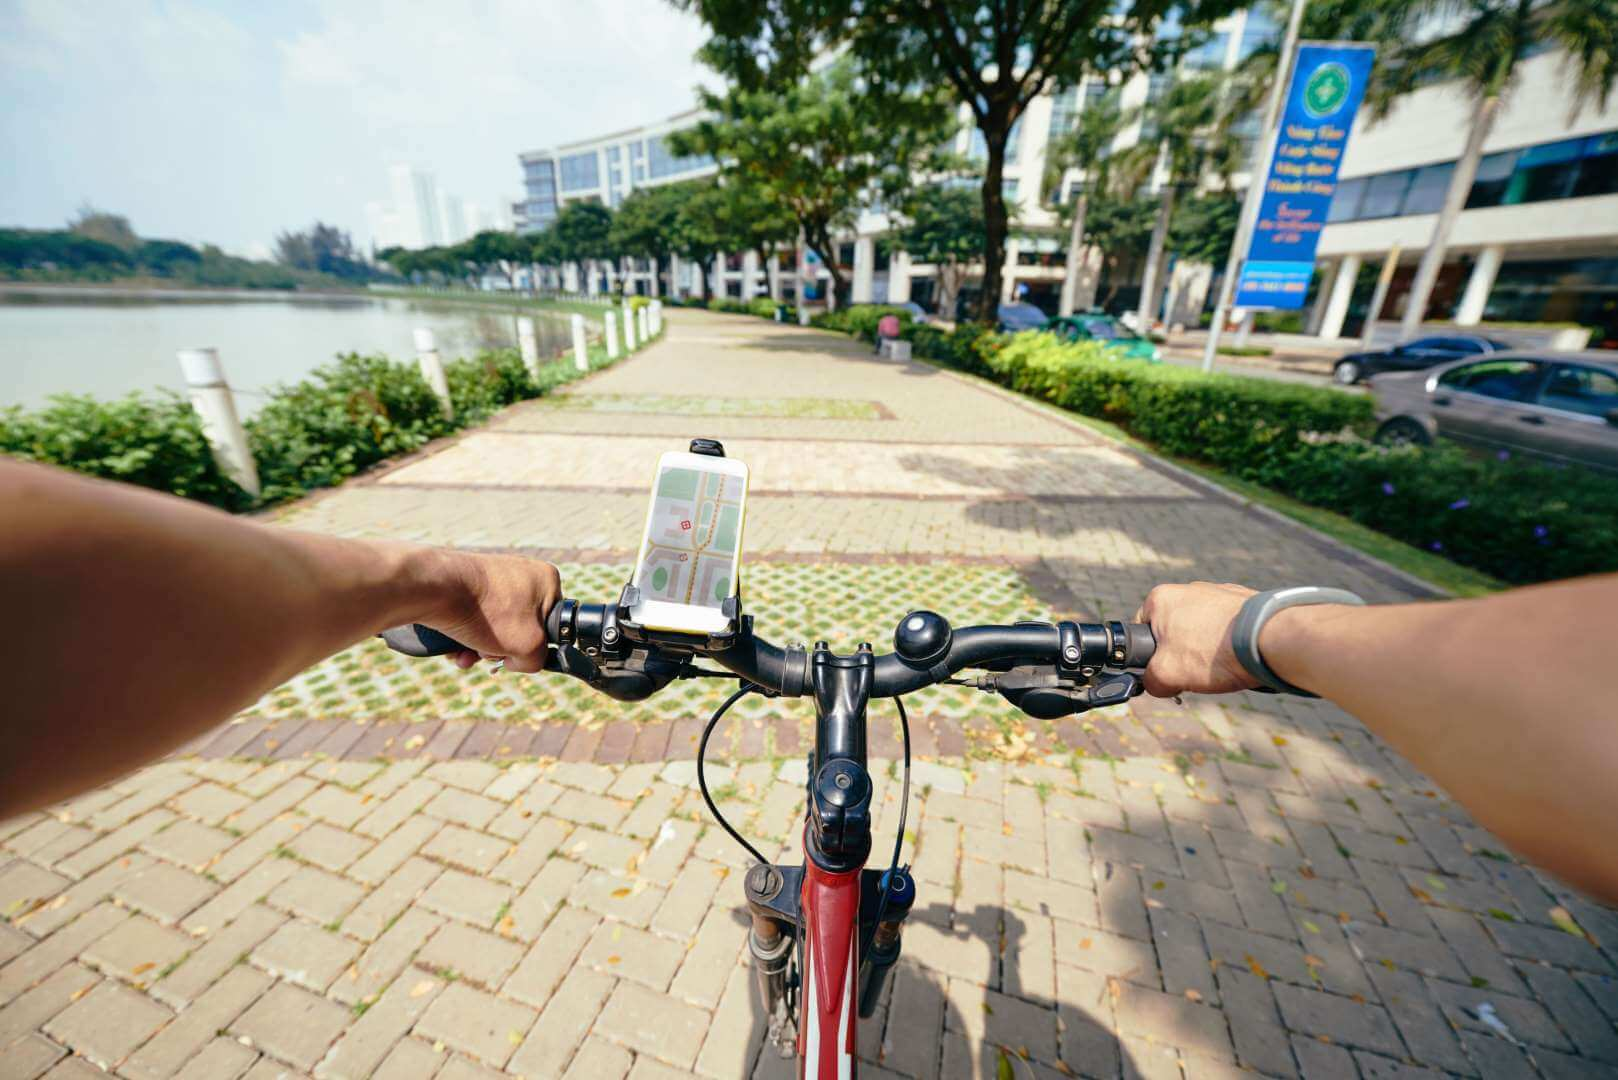 bike sharing programs in urban areas